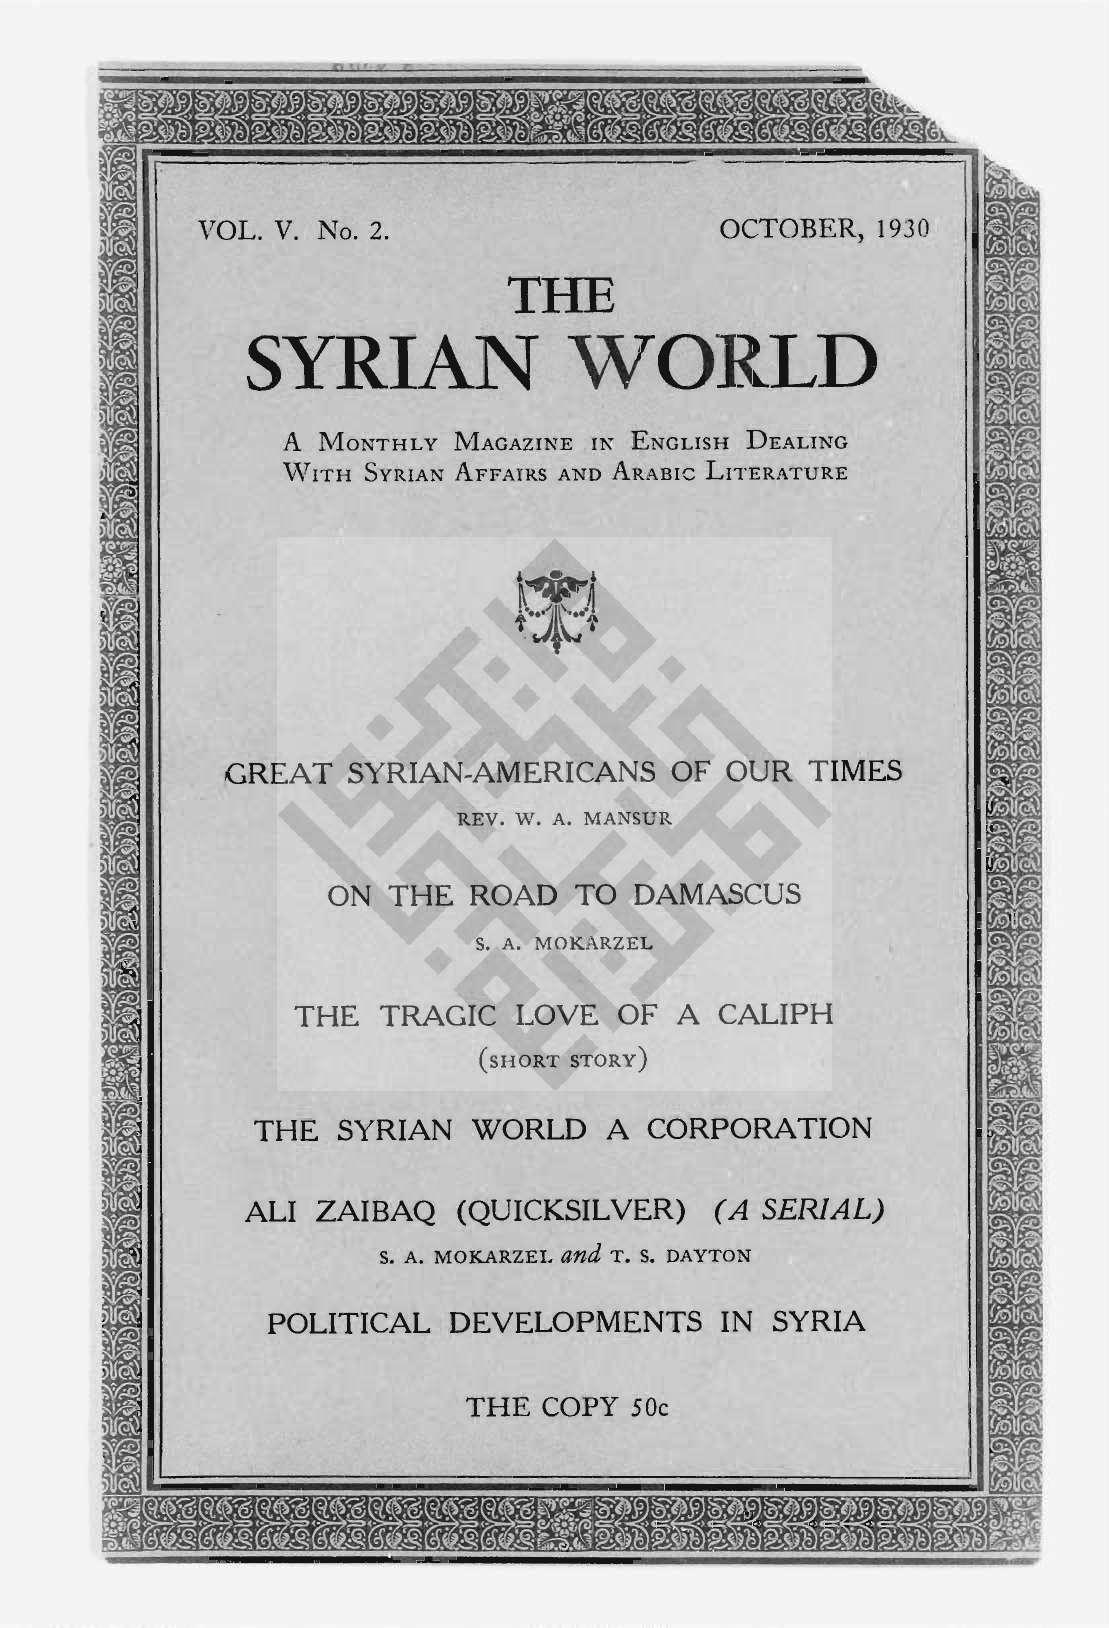 On Giving and Taking, The Syrian World, 5, 2, October 1930, p. 38